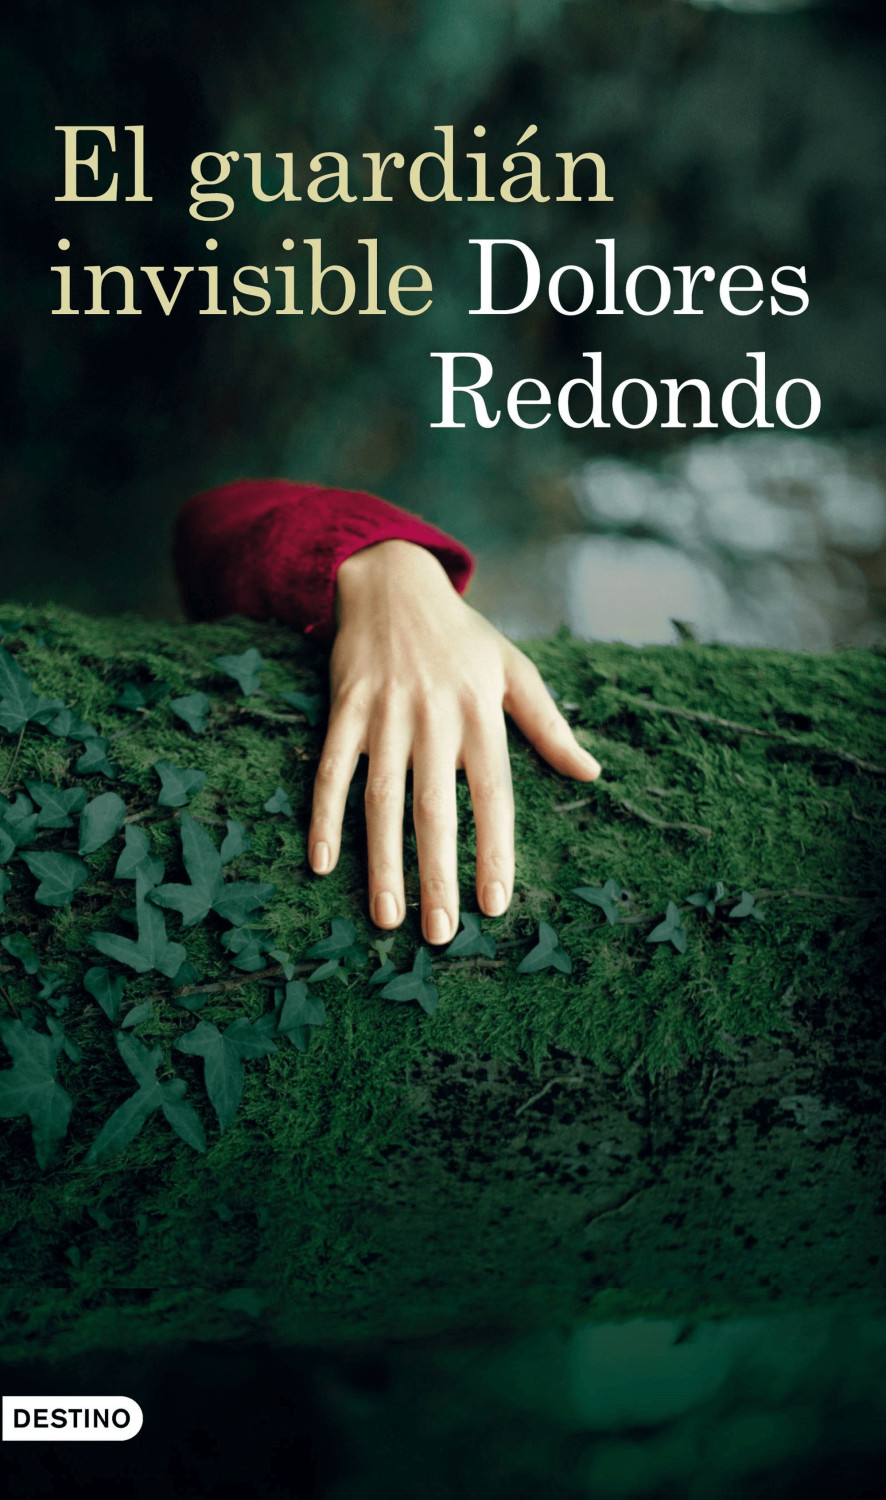 El guardián invisible (Dolores Redondo)